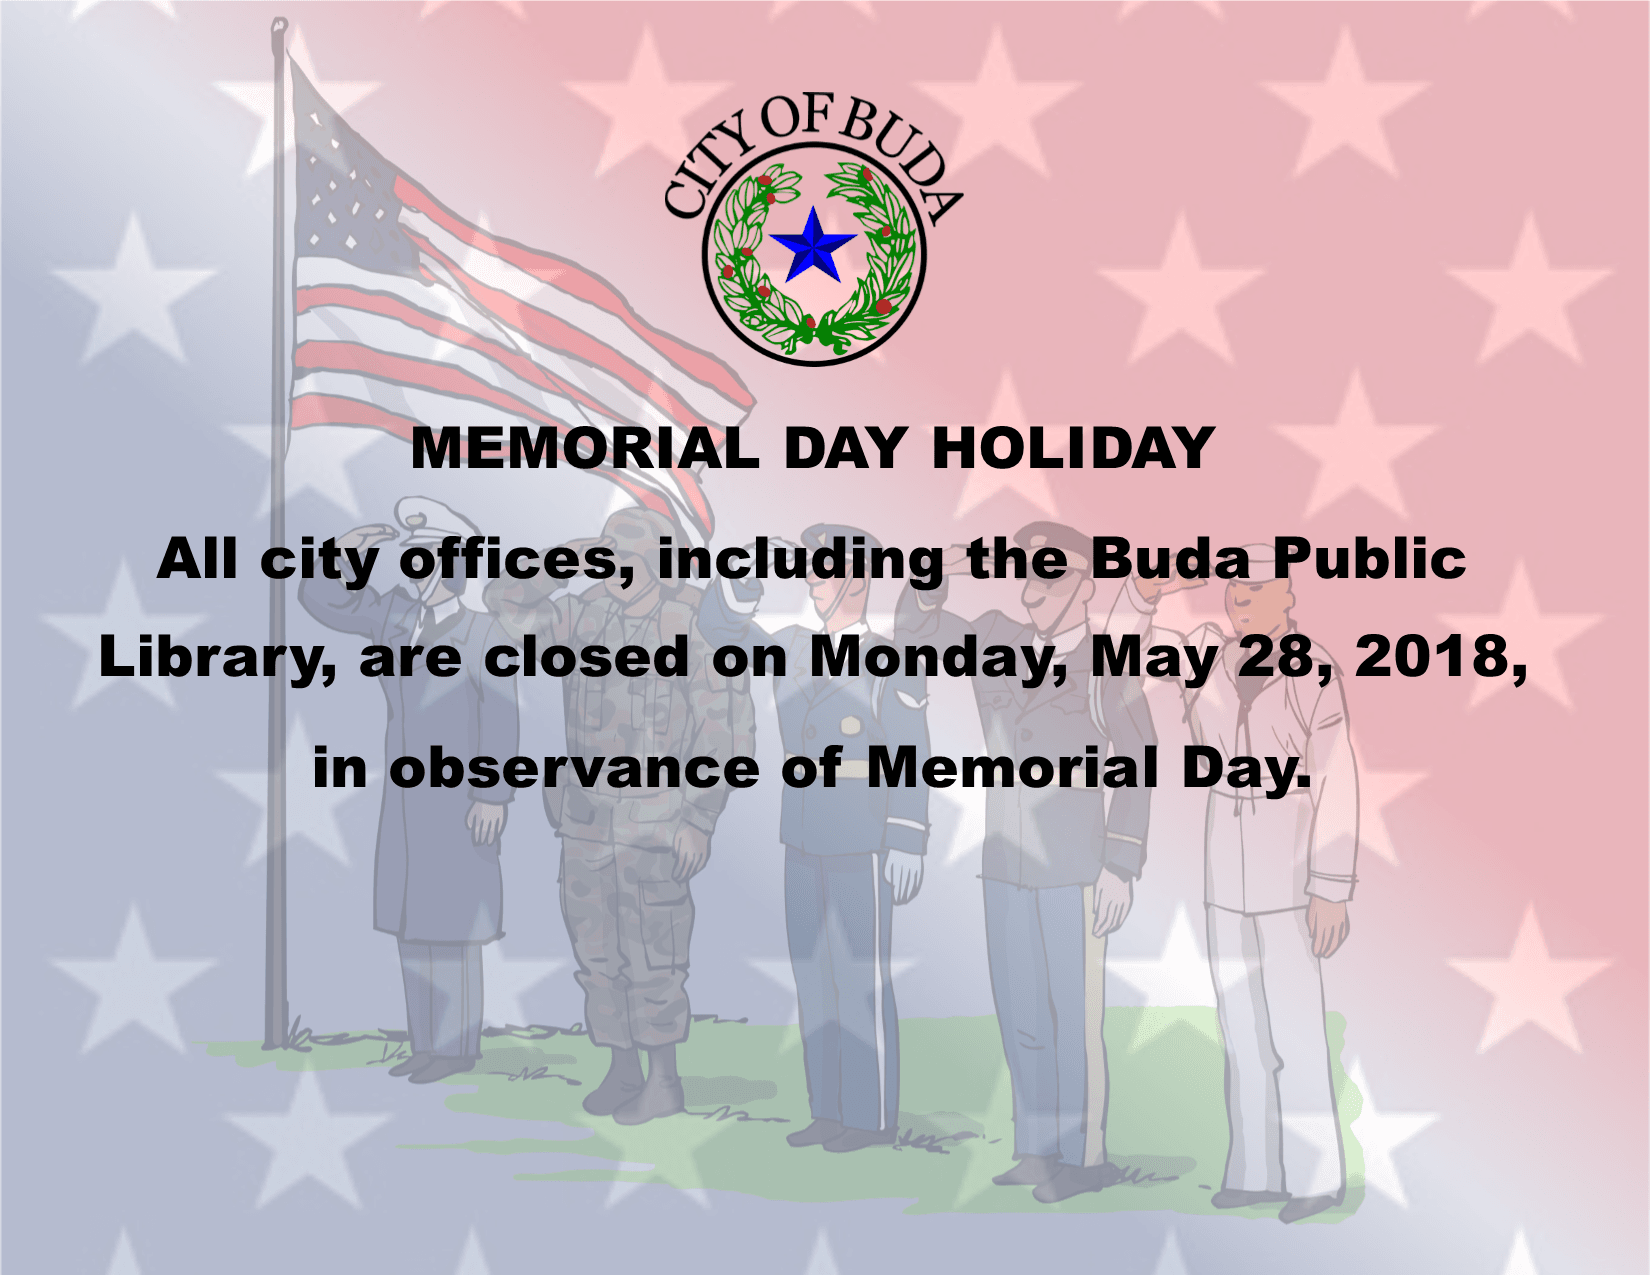 Memorial Day Holiday 2018